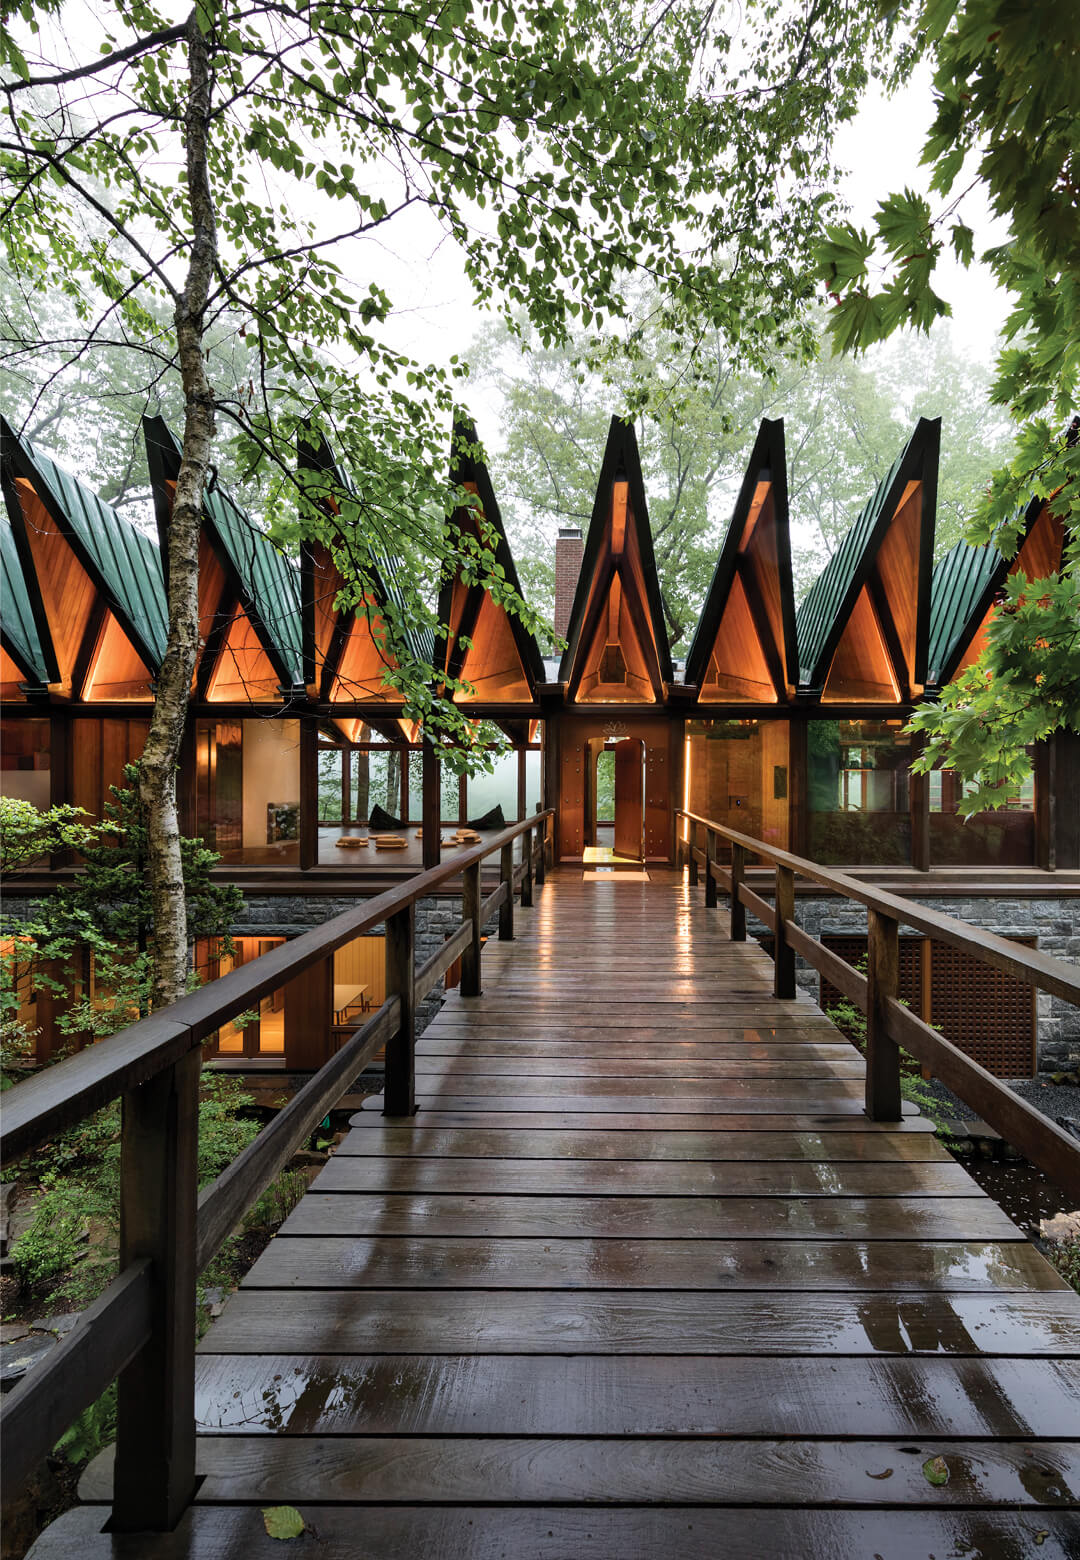 BarlisWedlick transforms a 1960's New York home, Beckoning Path into a private wellness retreat   Beckoning Path by BarlisWedlick Architects   STIRworld